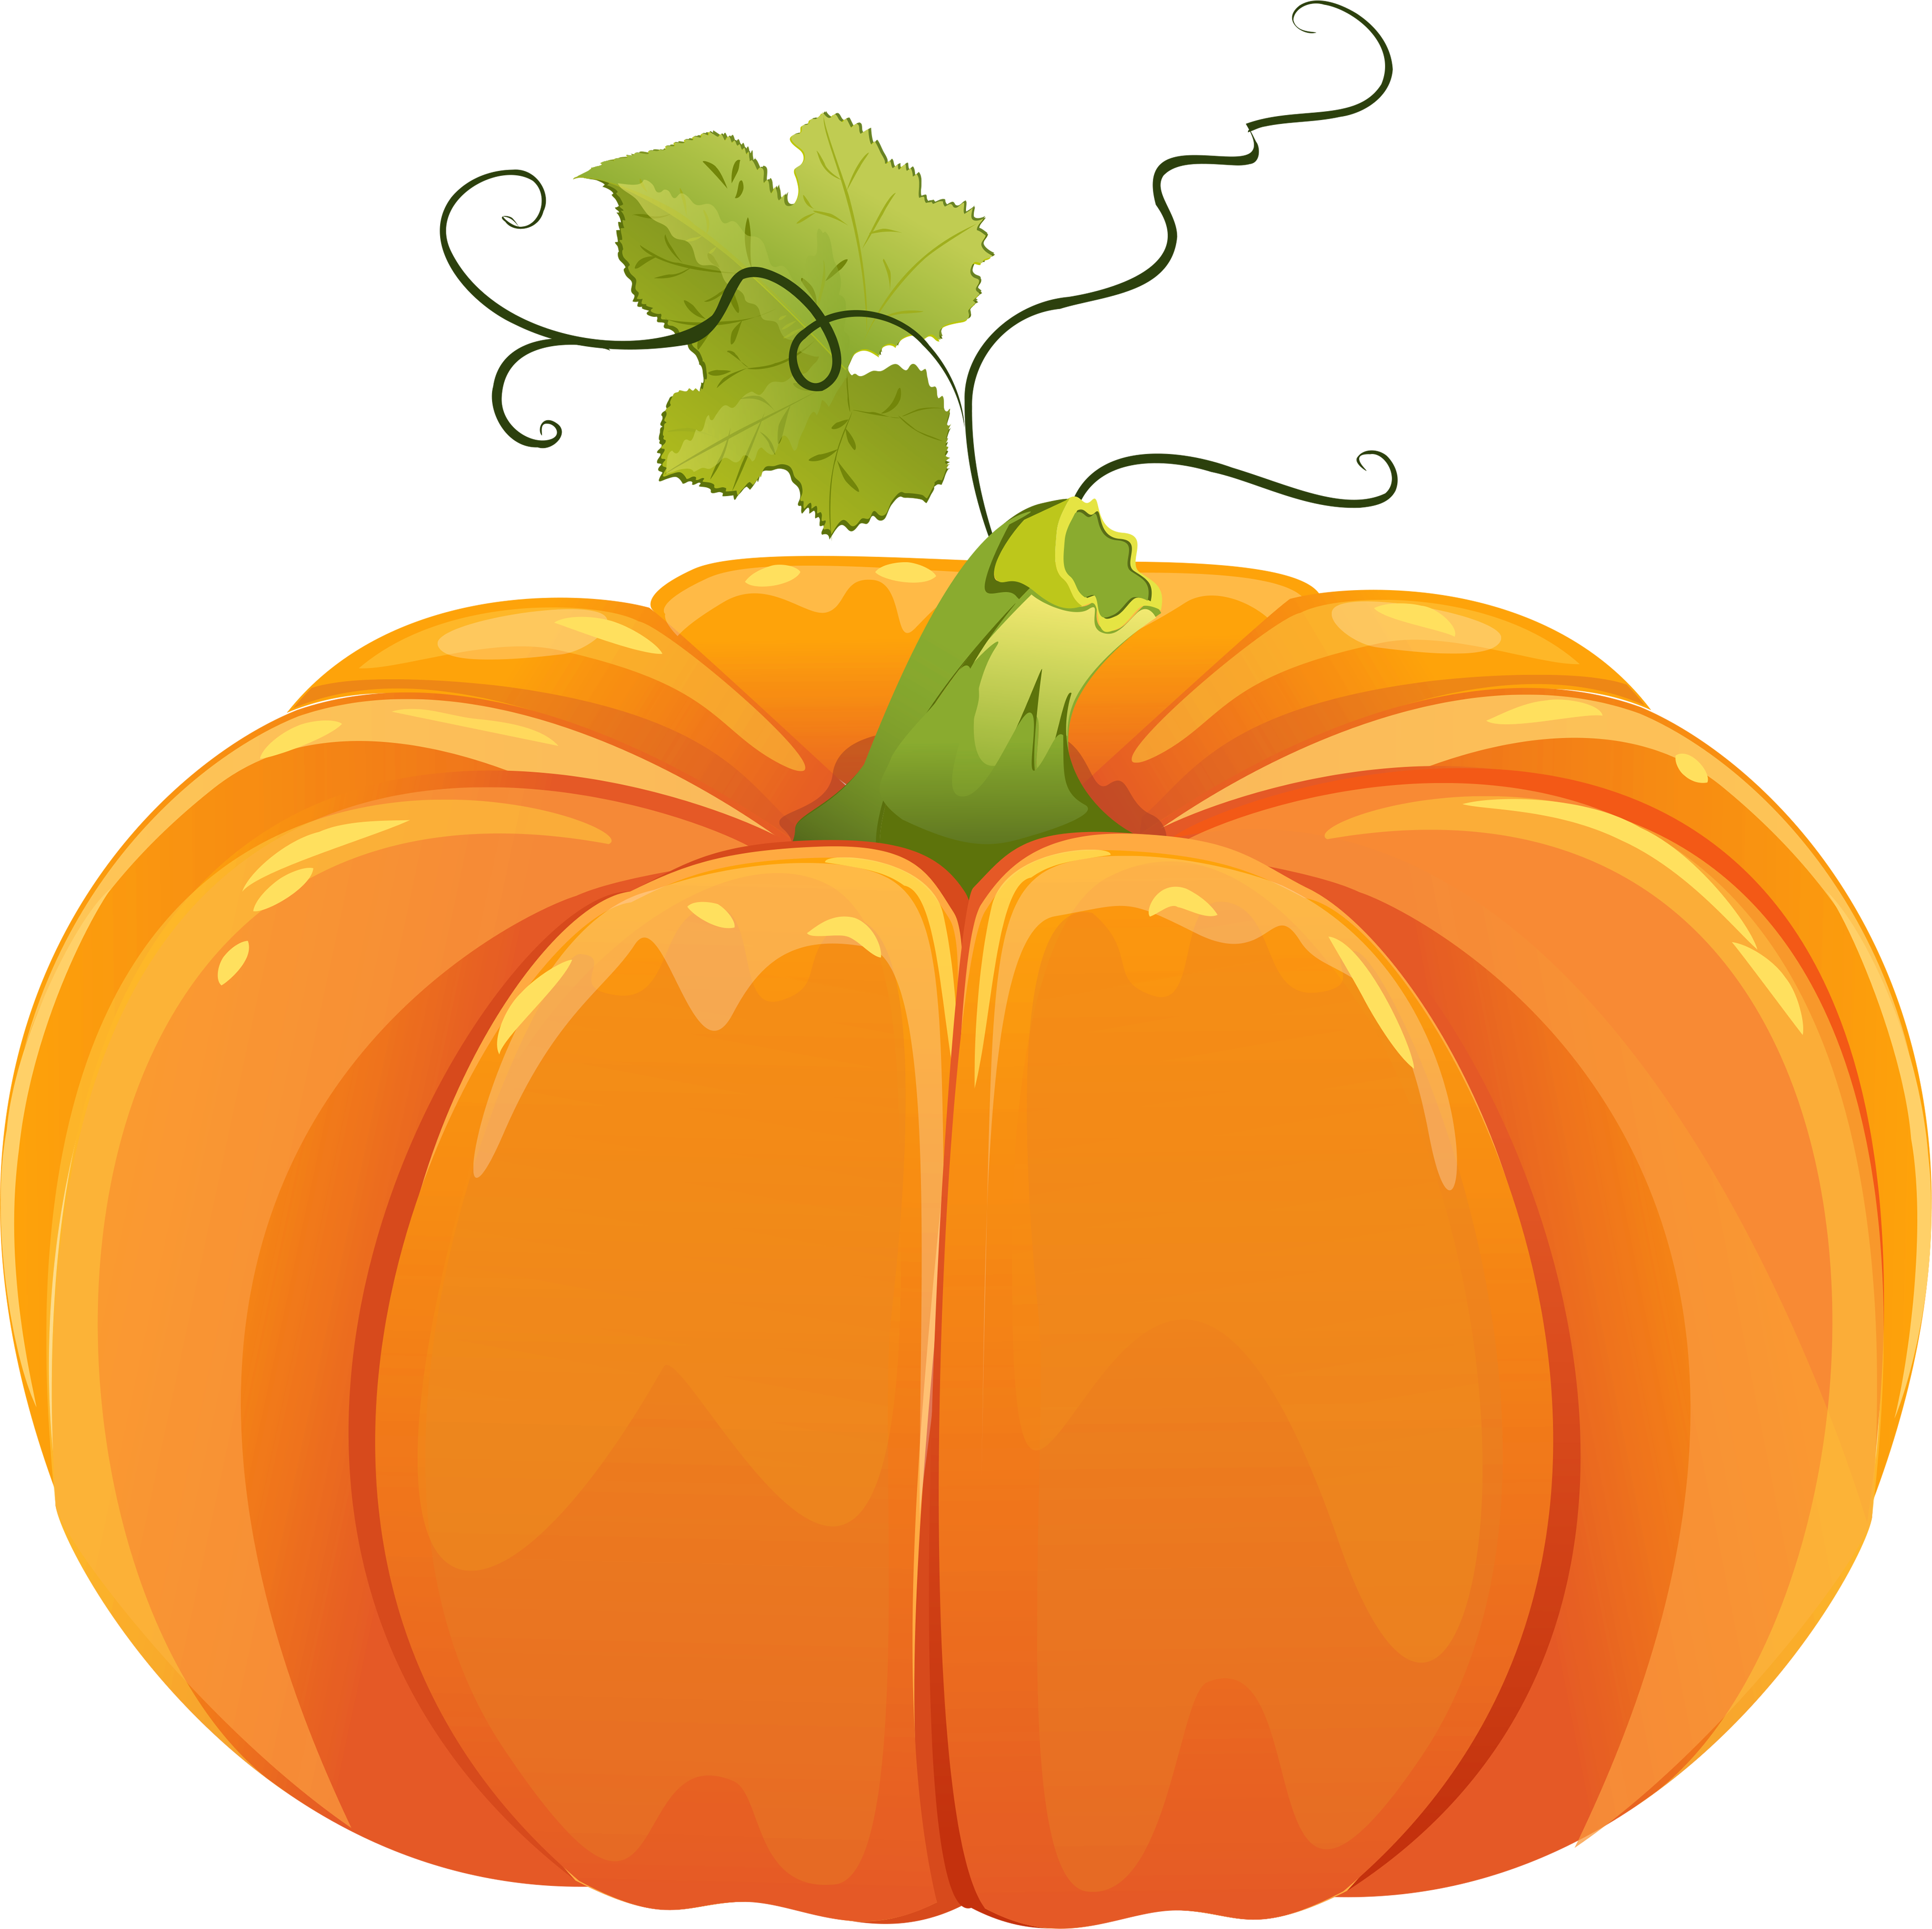 Drunk pumpkin clipart clipart free stock Is Raw Food Healthier Than Cooked Food? on emaze clipart free stock